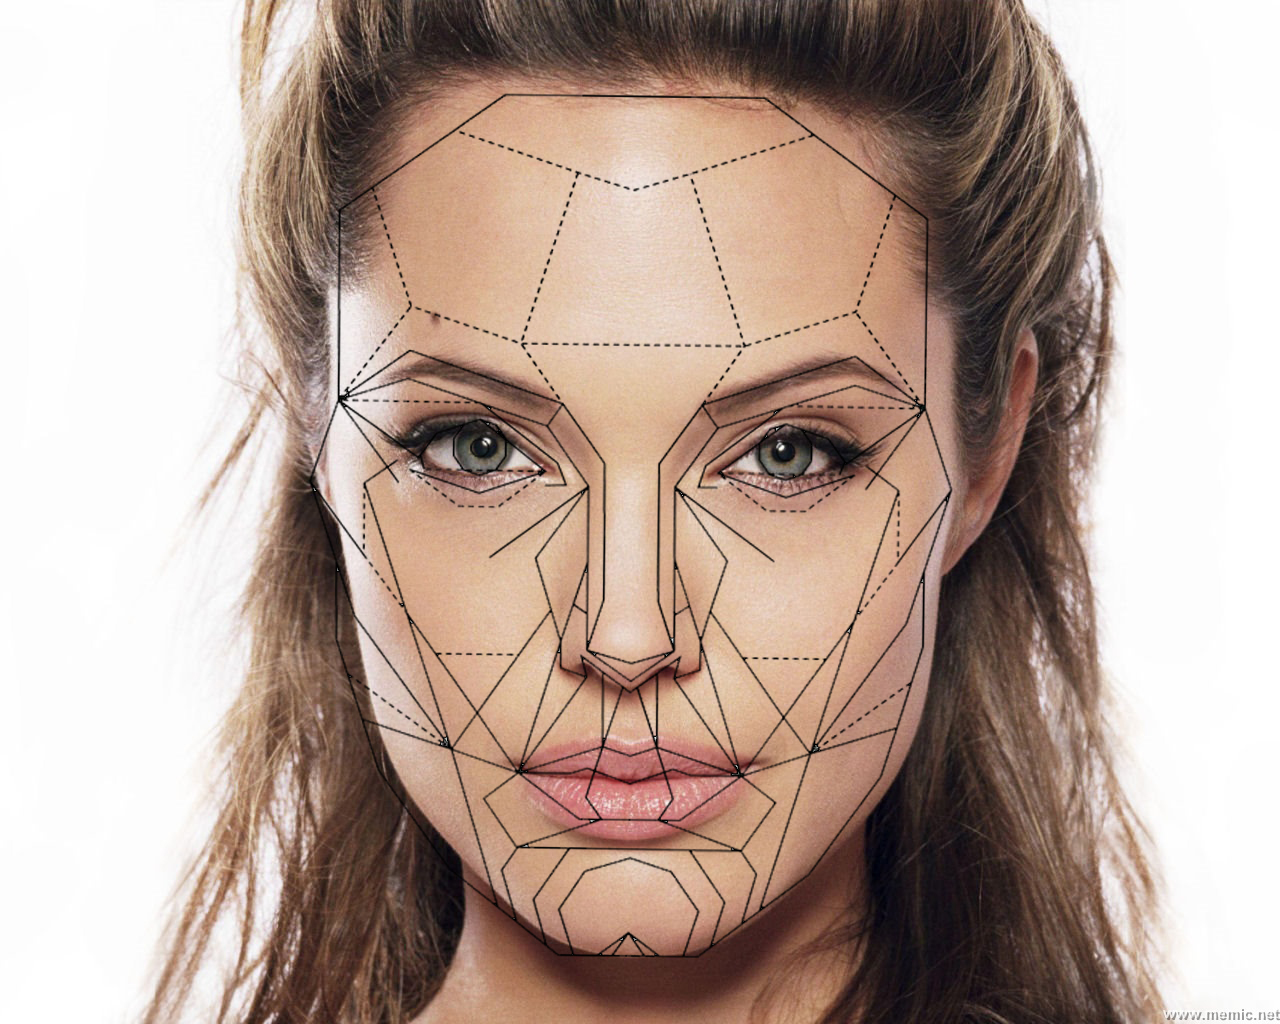 Angelina Jolie fits the Golden Ratio Facial Mask perfectly. Angelina Jolie, though beautiful, apparently doesn't fit the mask exactly right.